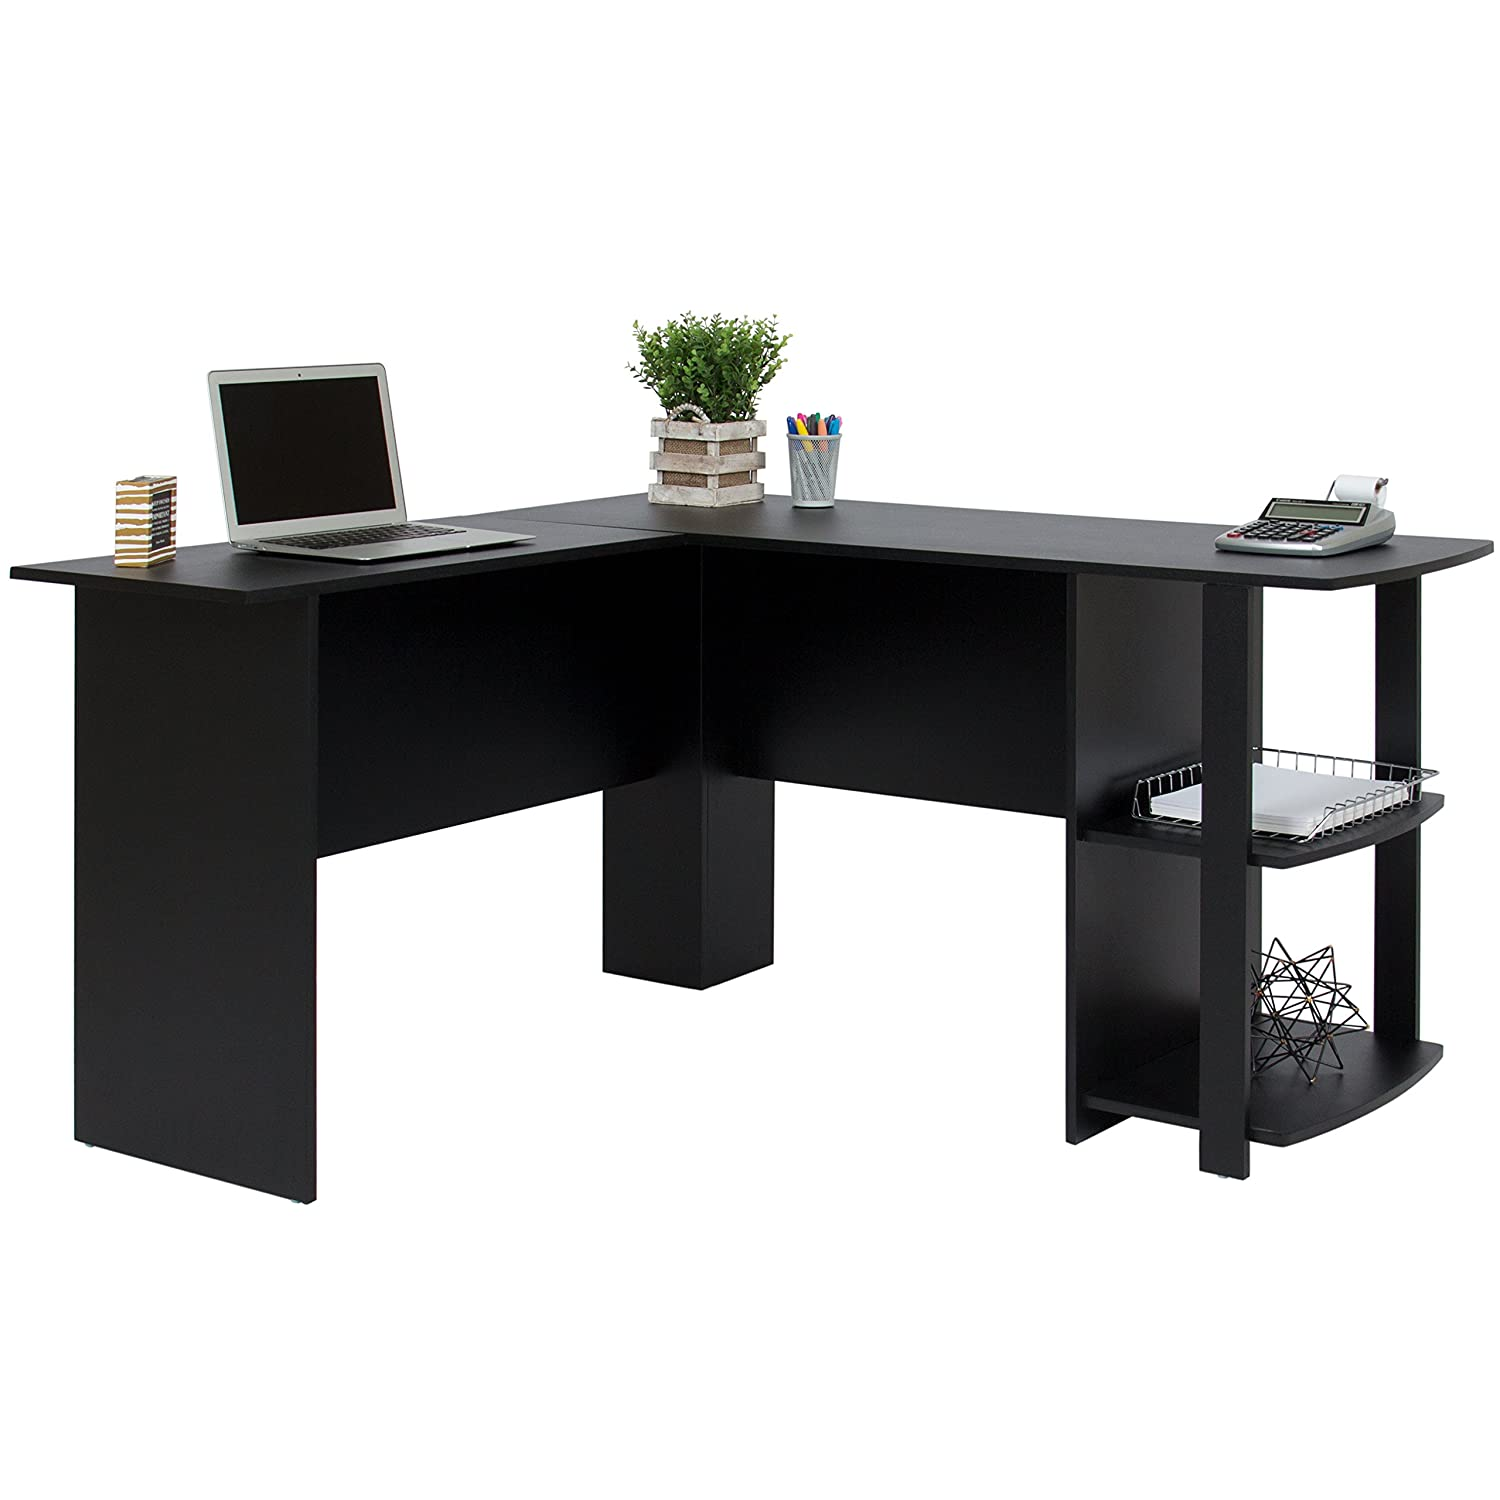 for buy desc idai desk home co desks online baskan office